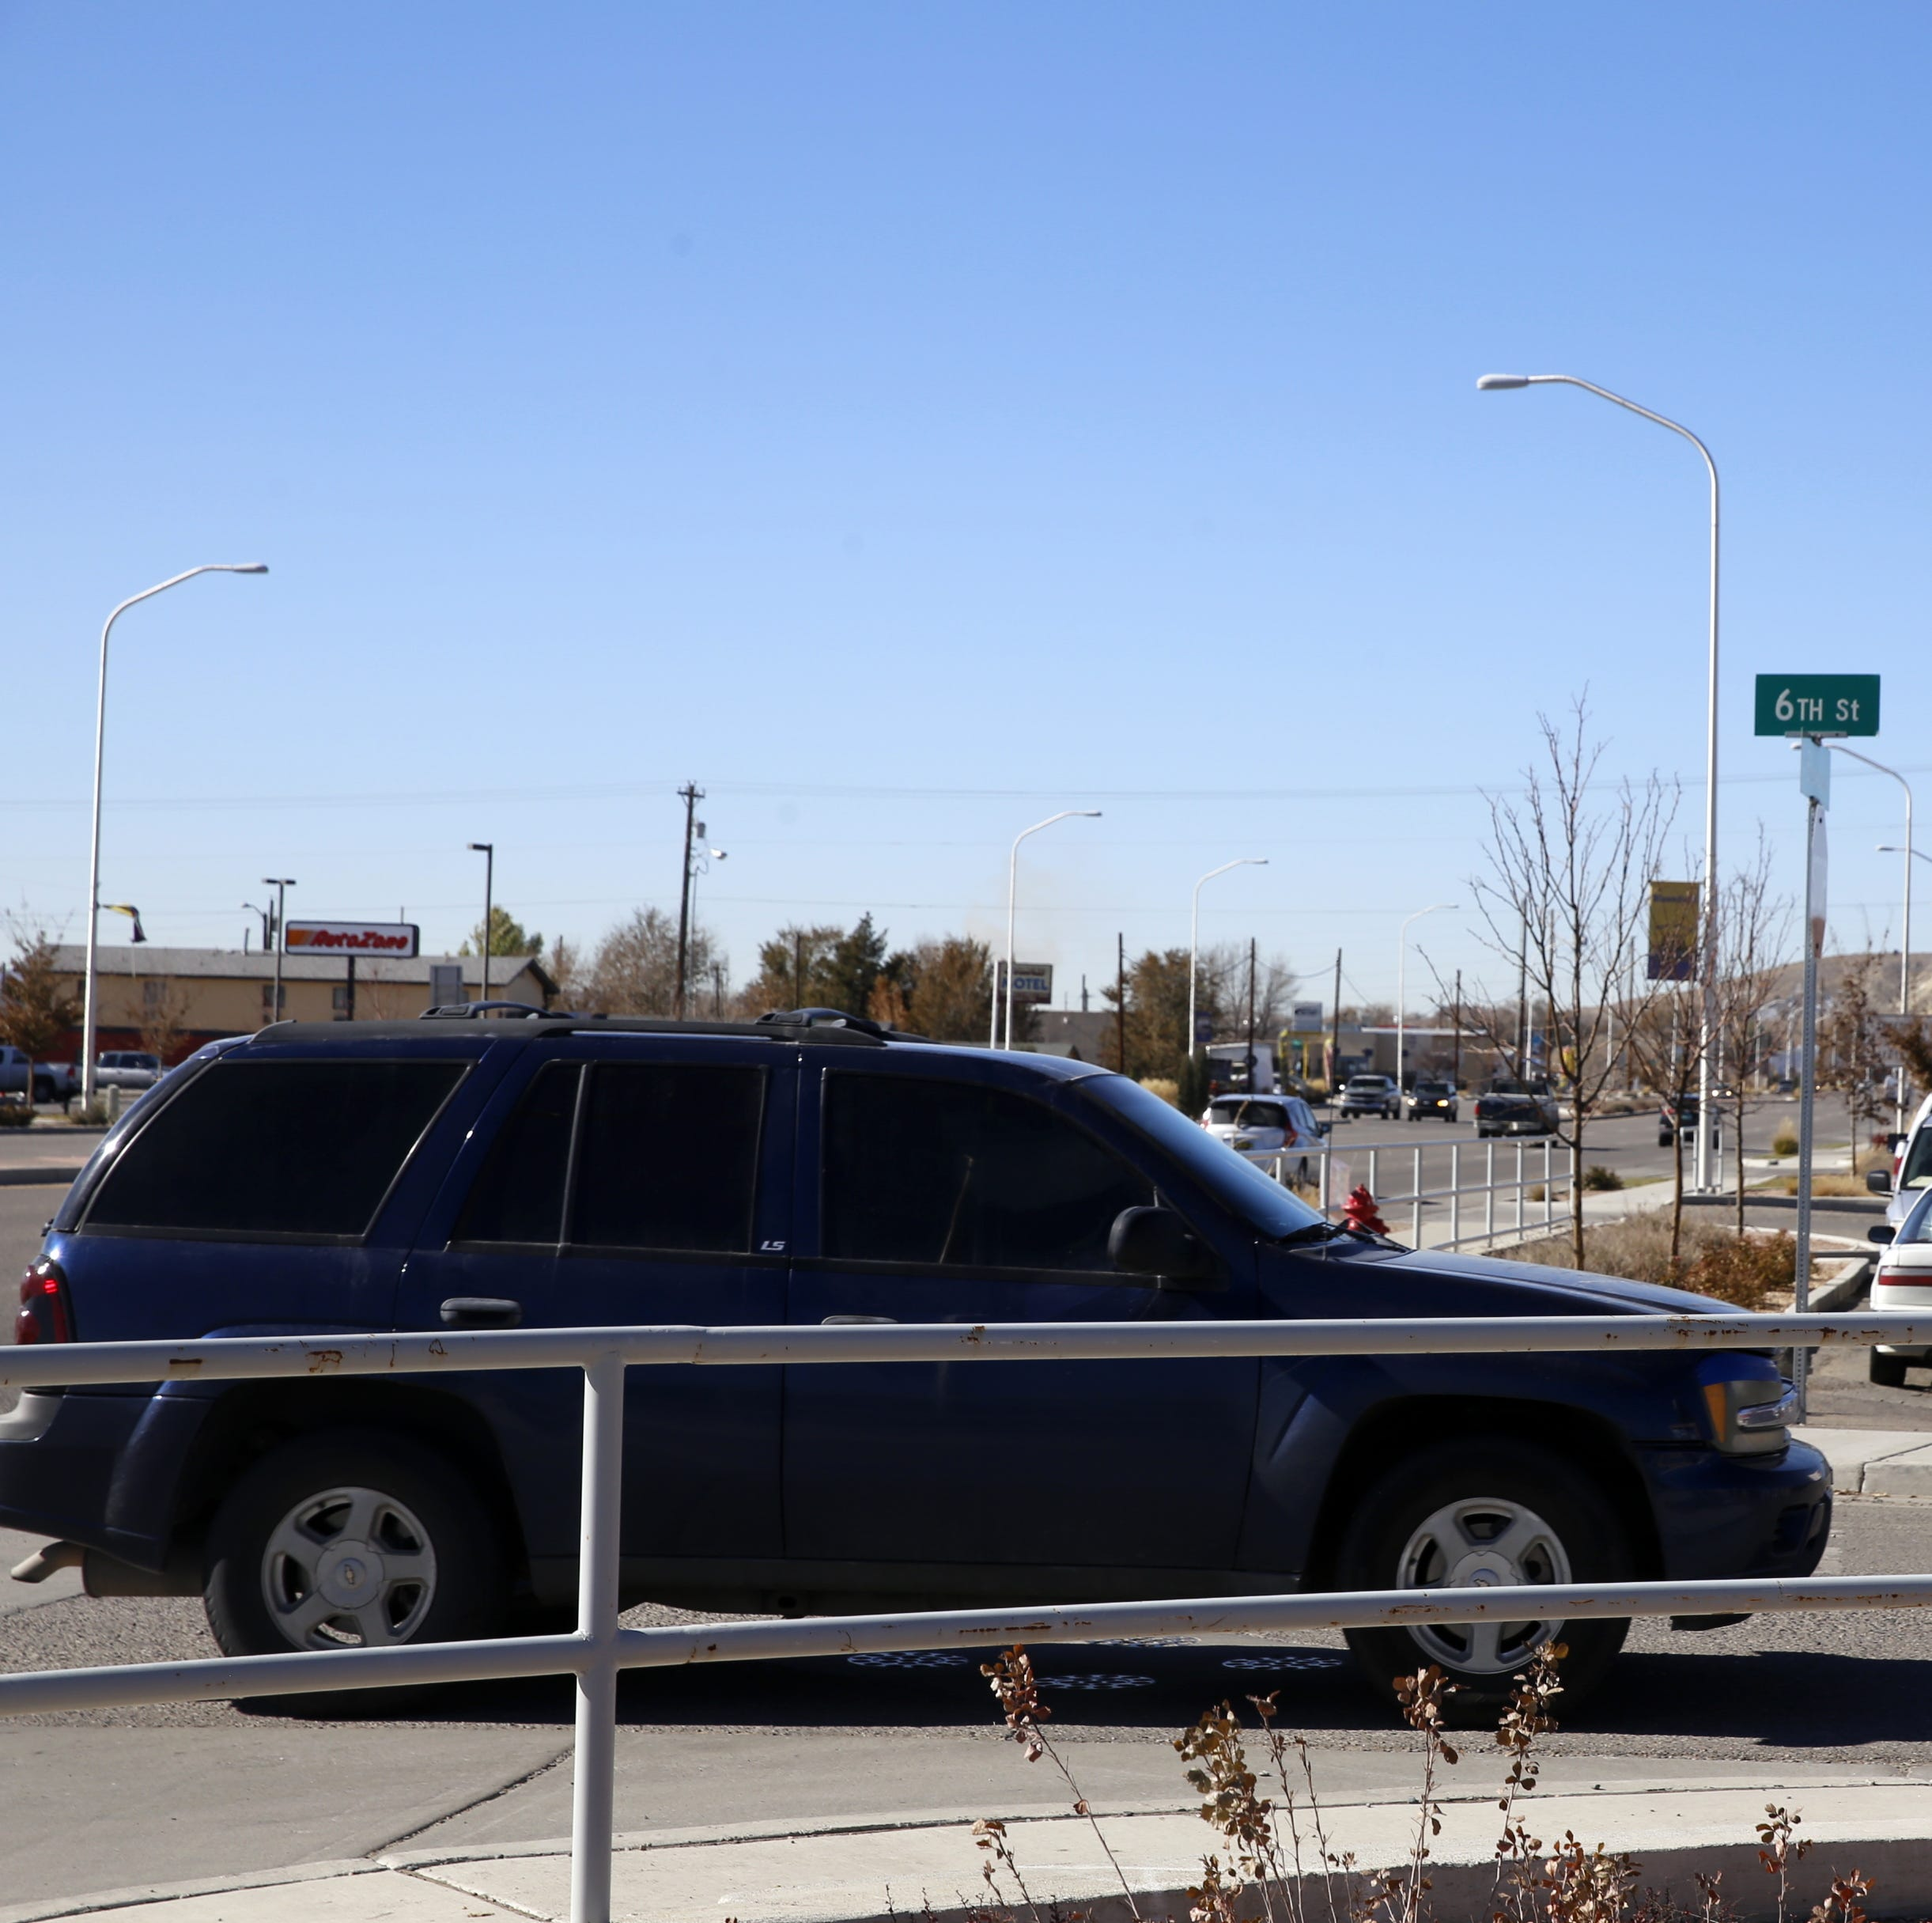 Short Bloomfield street draws more than a thousand vehicles a day